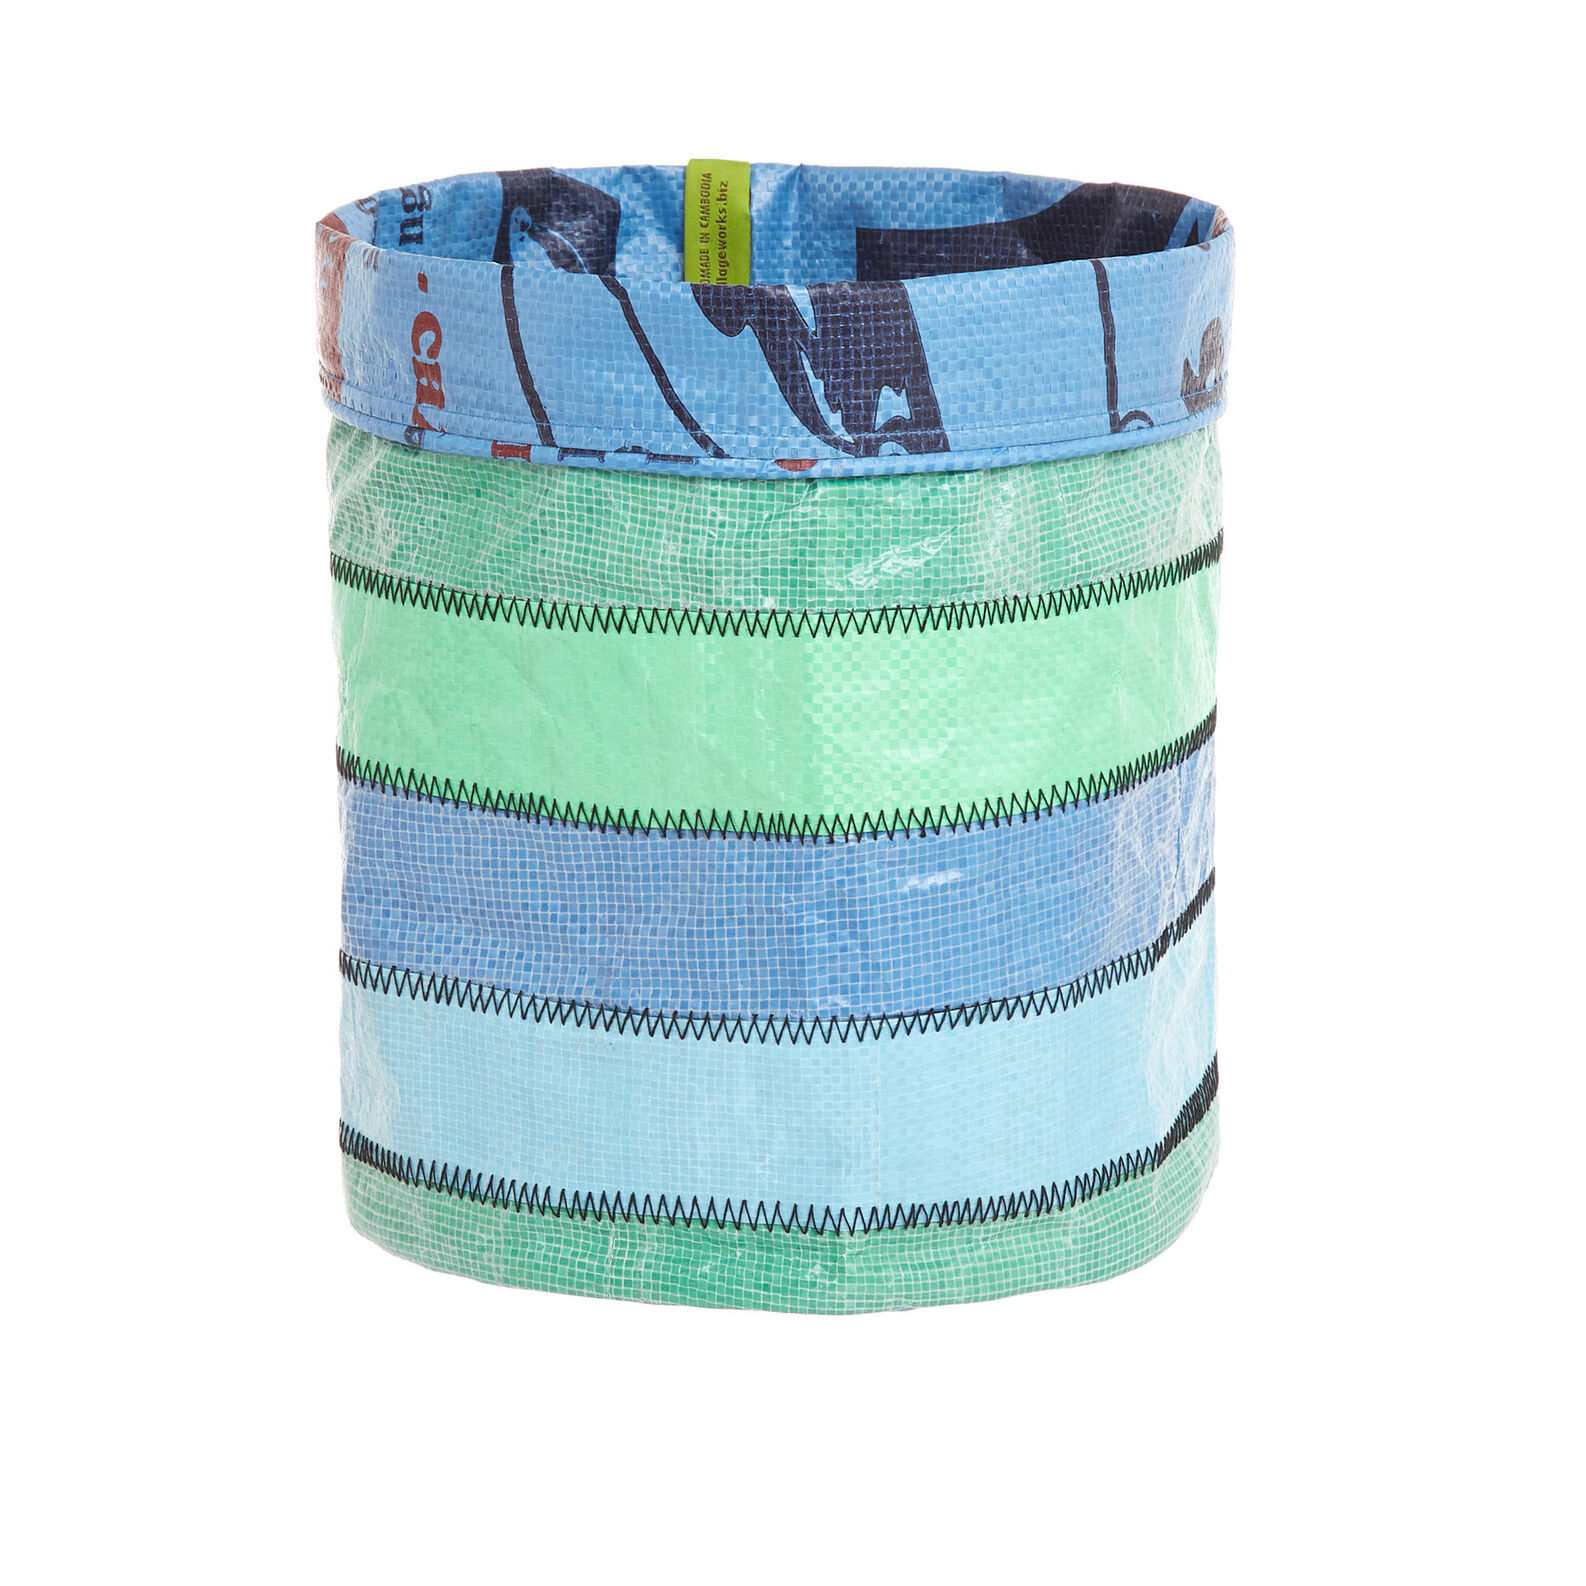 Basket in recycled material